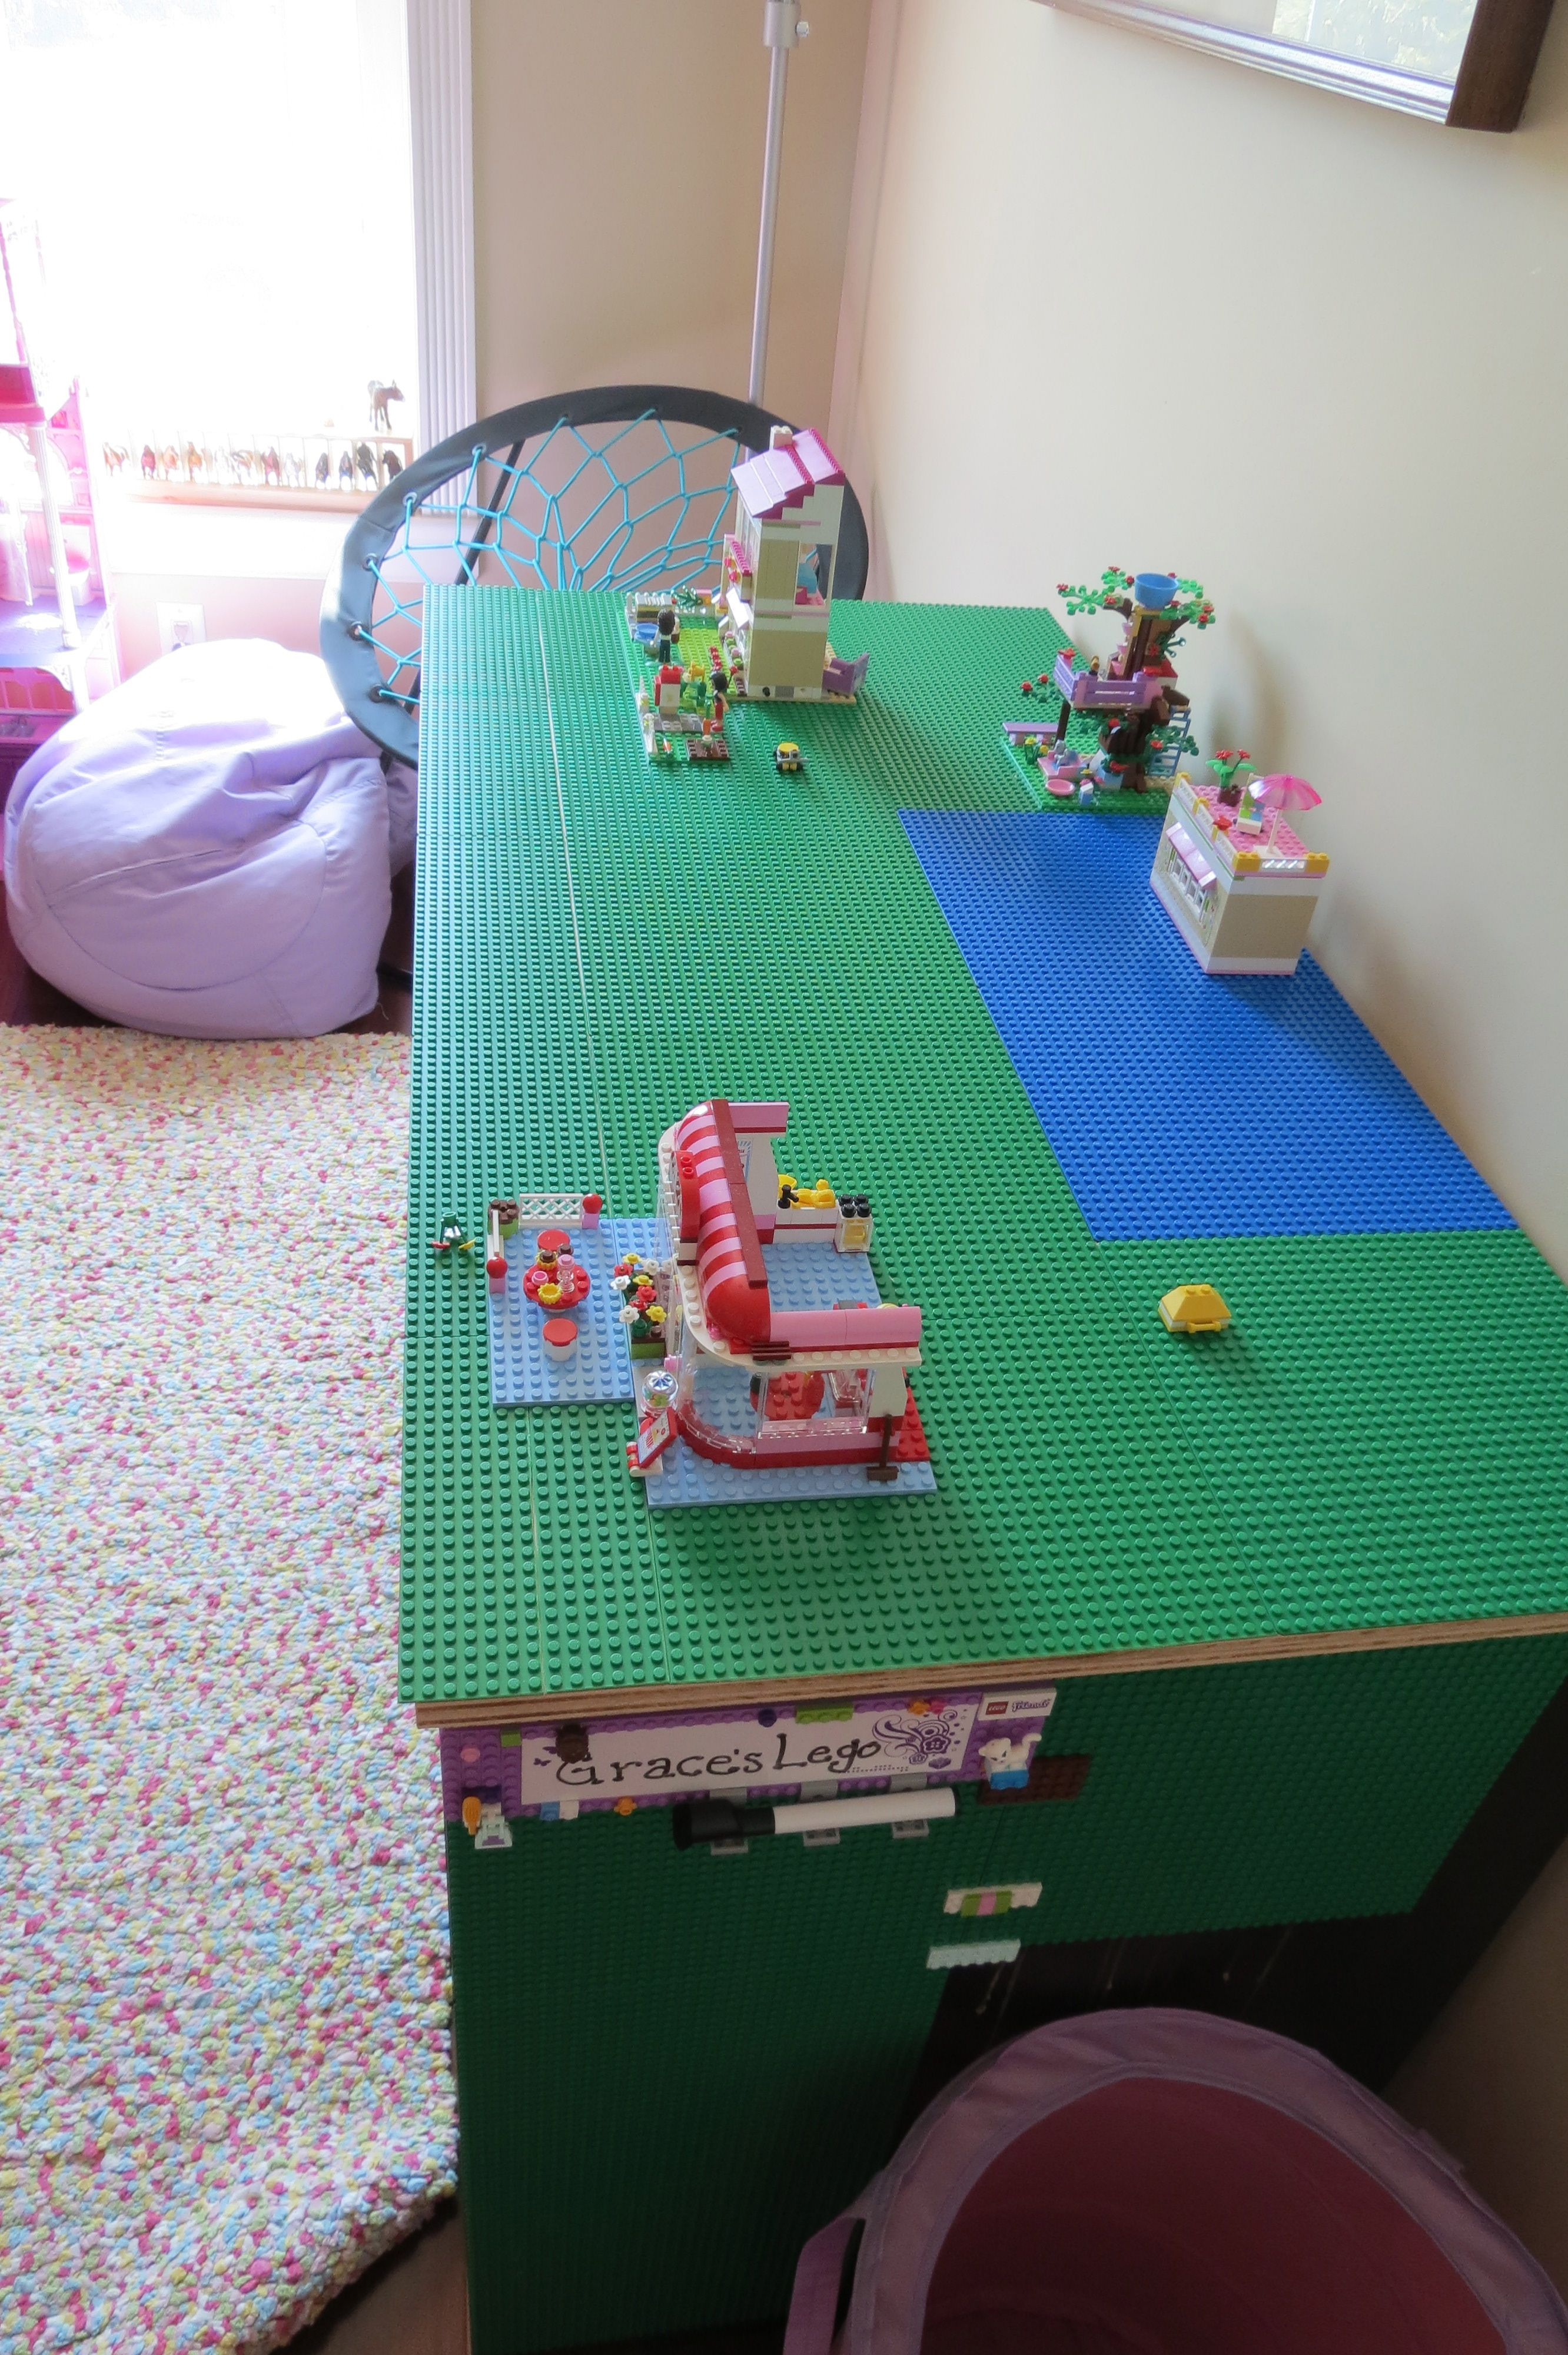 lego table - this is perfect. Must be meant to be as GG's name is already on the side of the table in the picture!